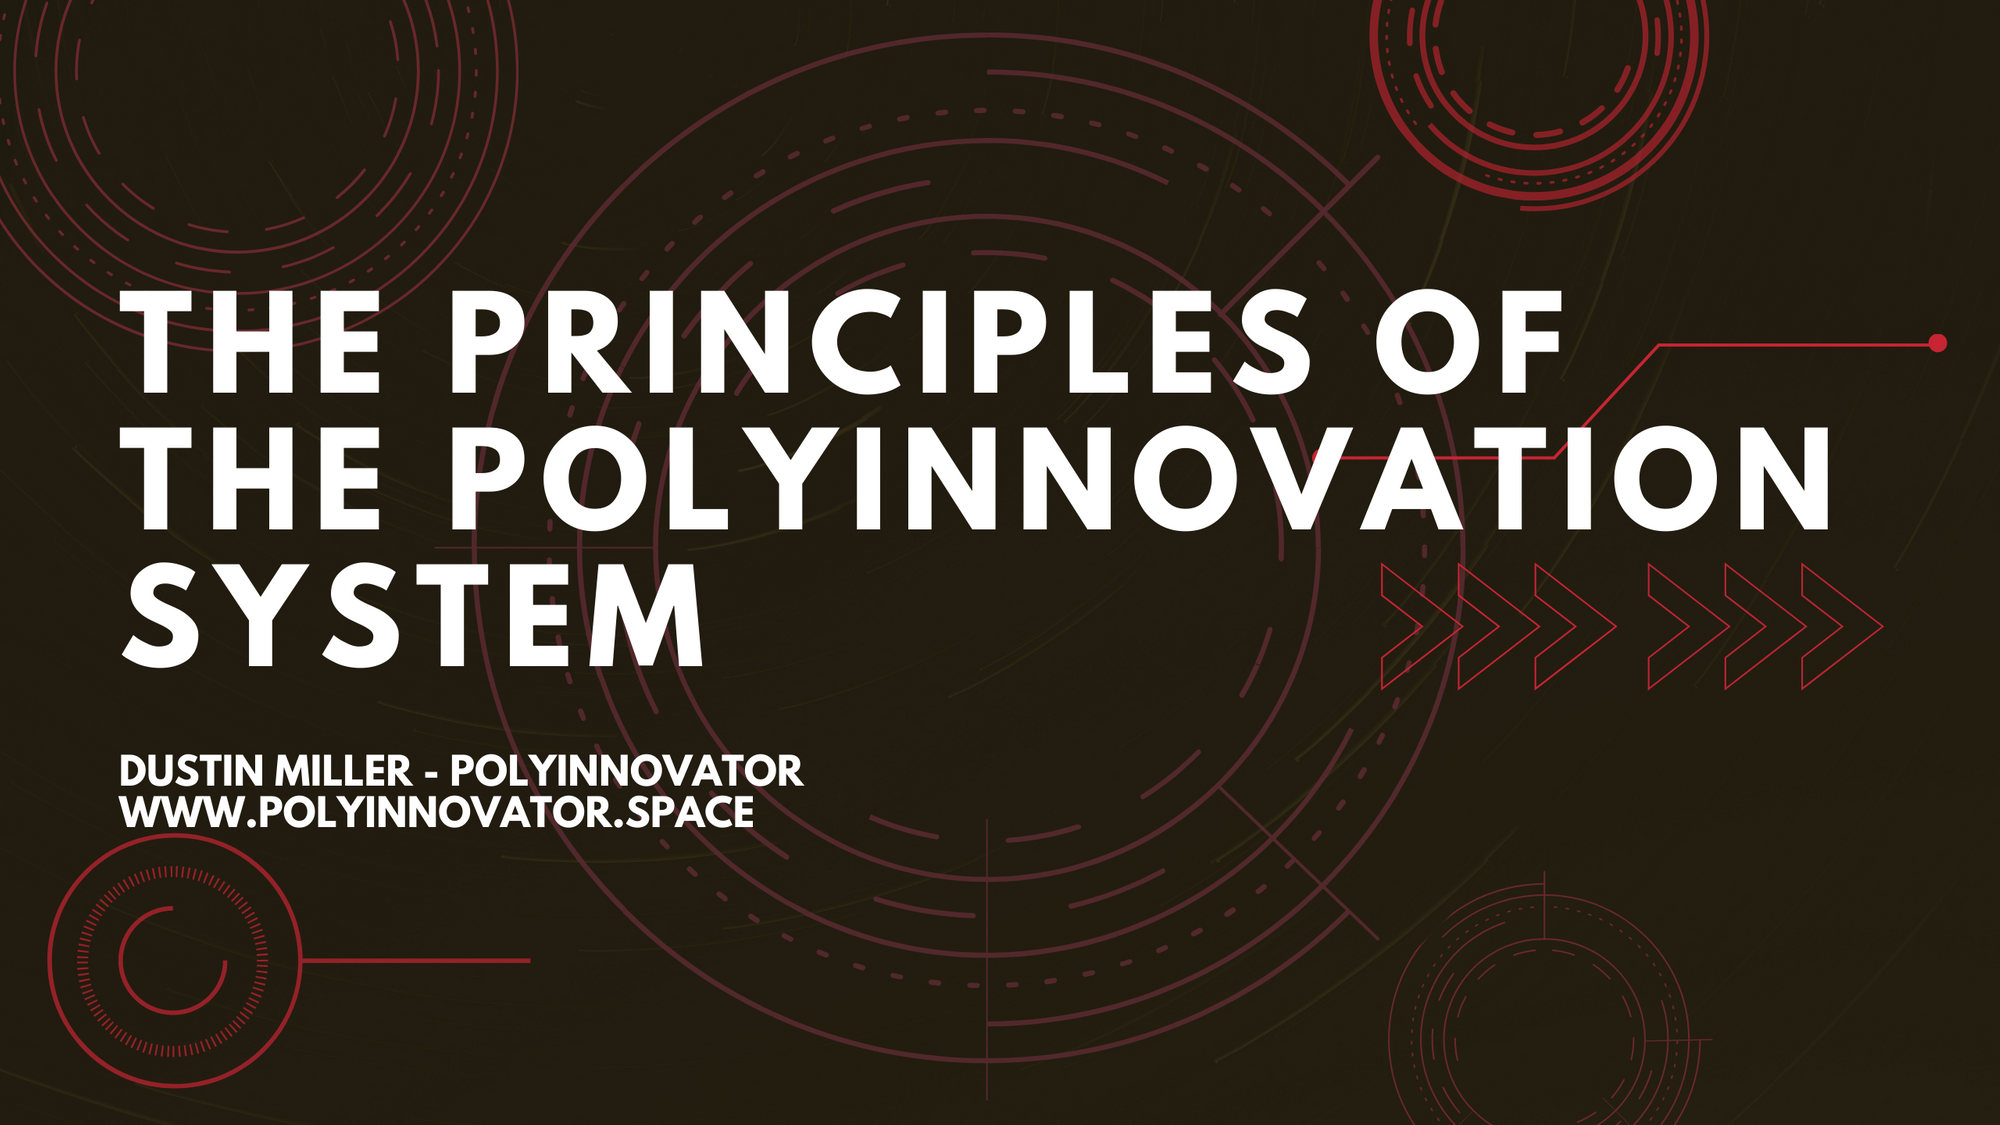 The Principles of the PolyInnovation System